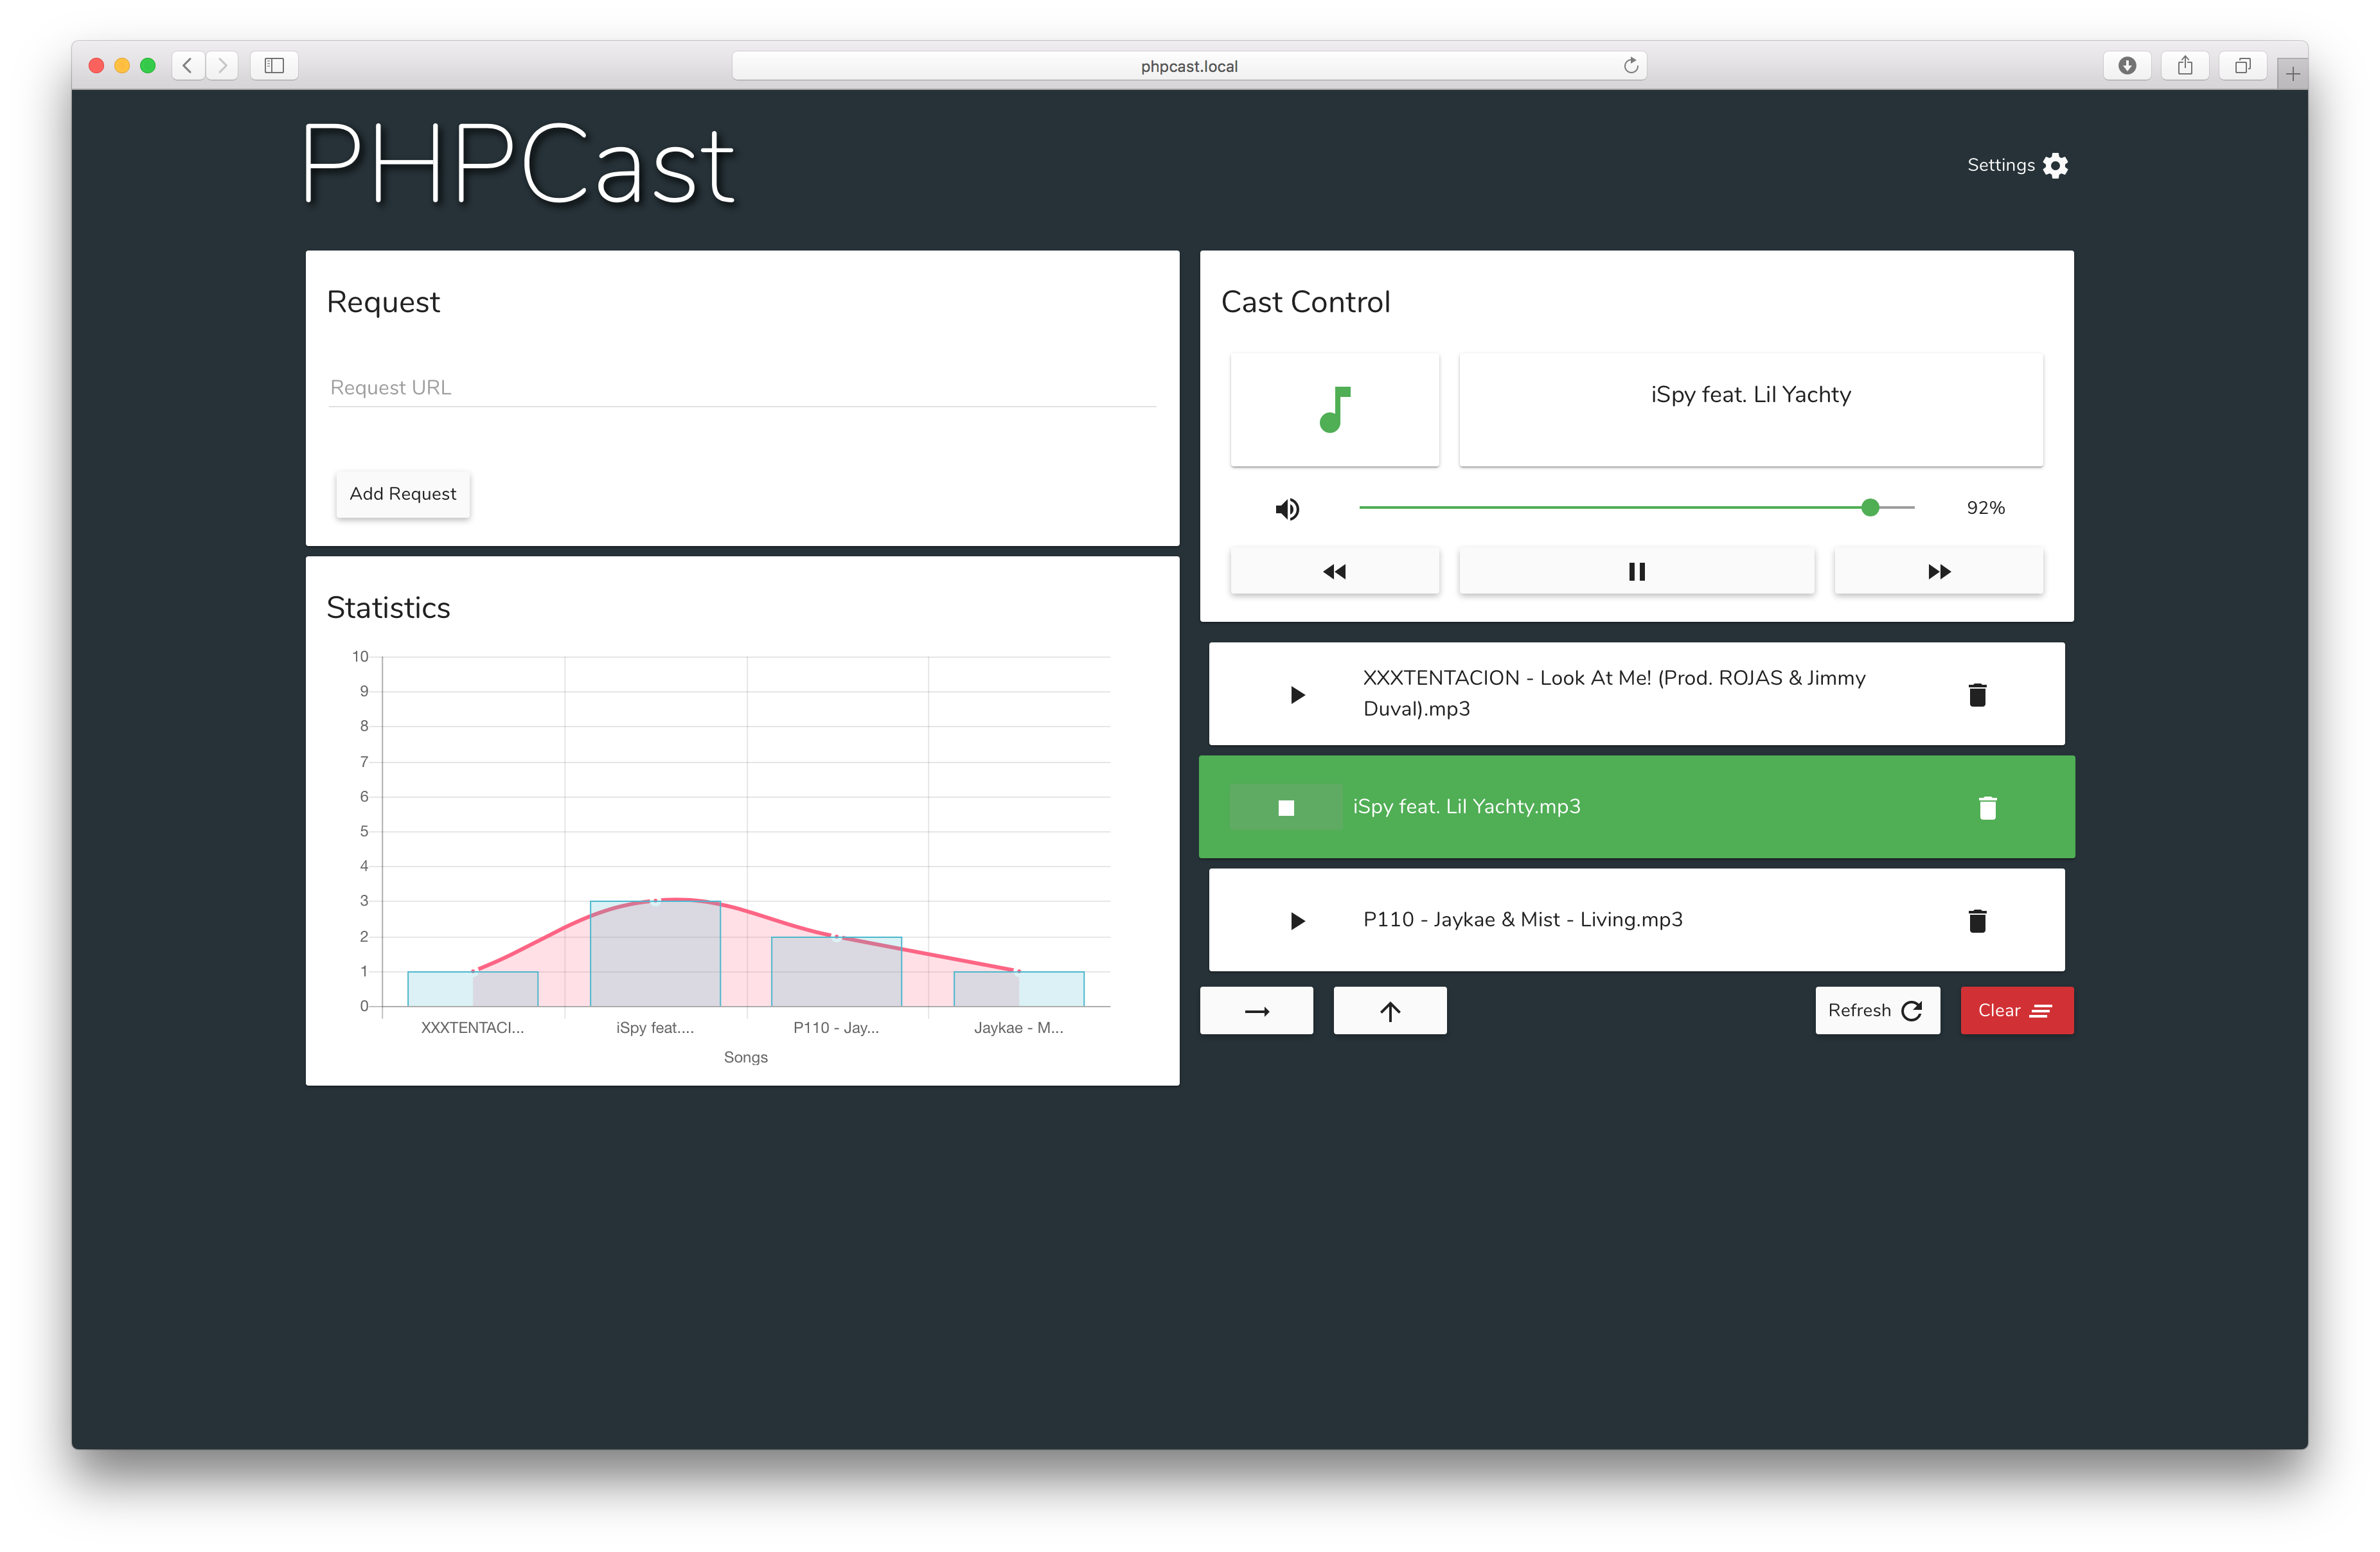 GitHub - AceXintense/PHPCast: PHPCast is a PHP application